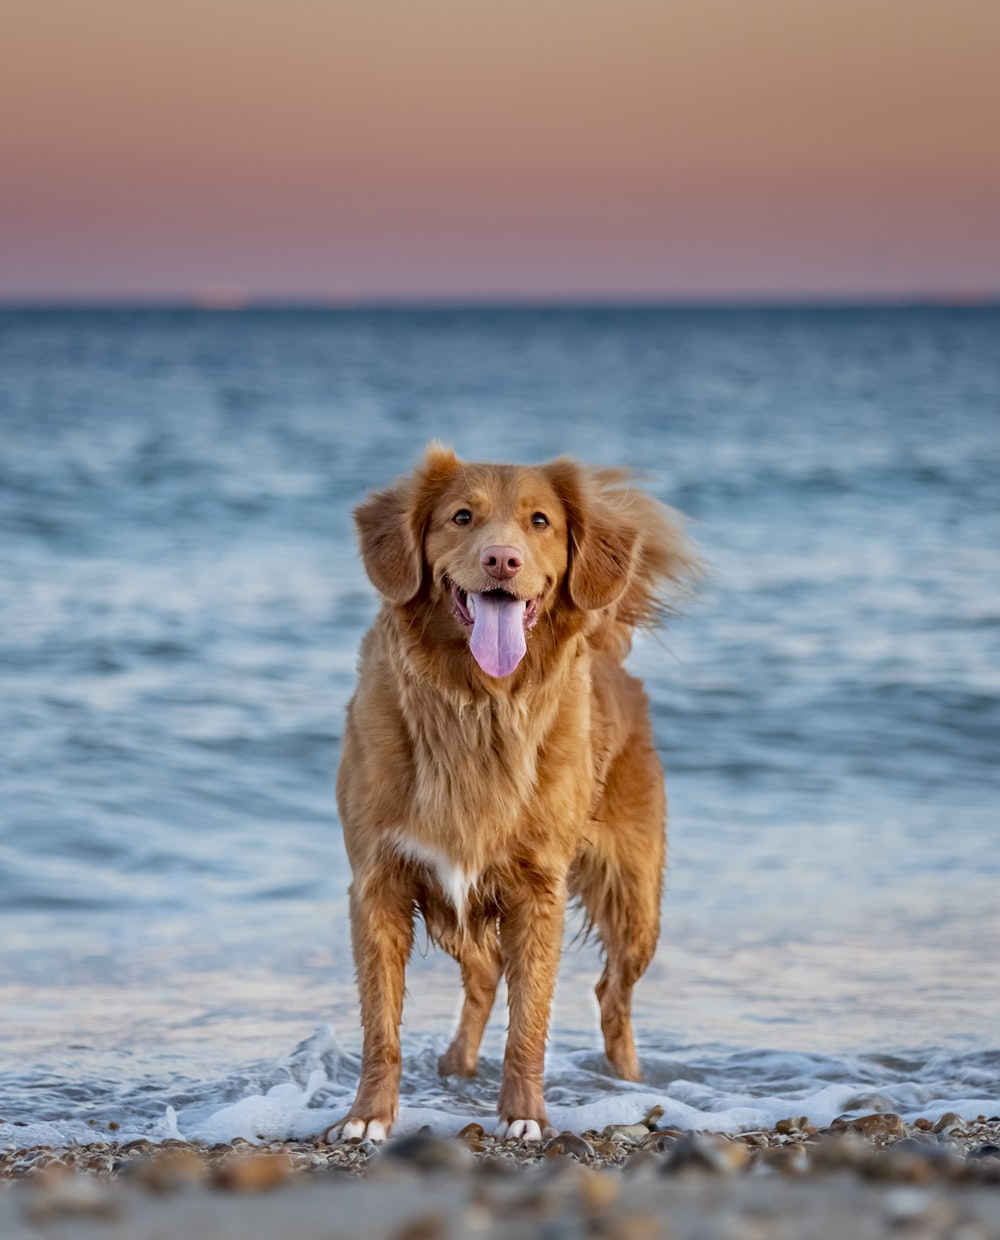 golden retriever sitting on seashore during daytime